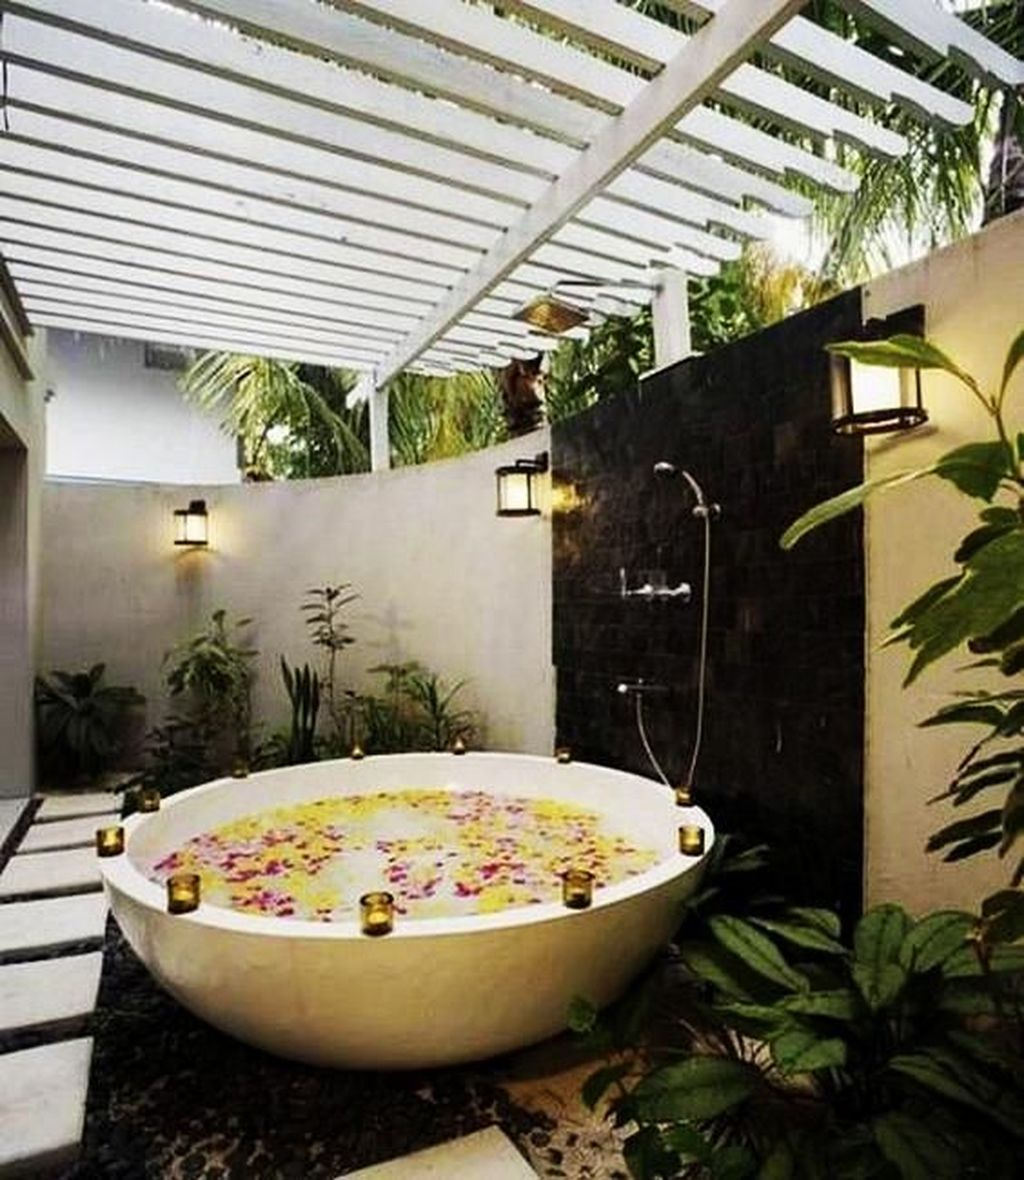 Creative Outdoor Bathroom Design Ideas For Enjoying Summer 08